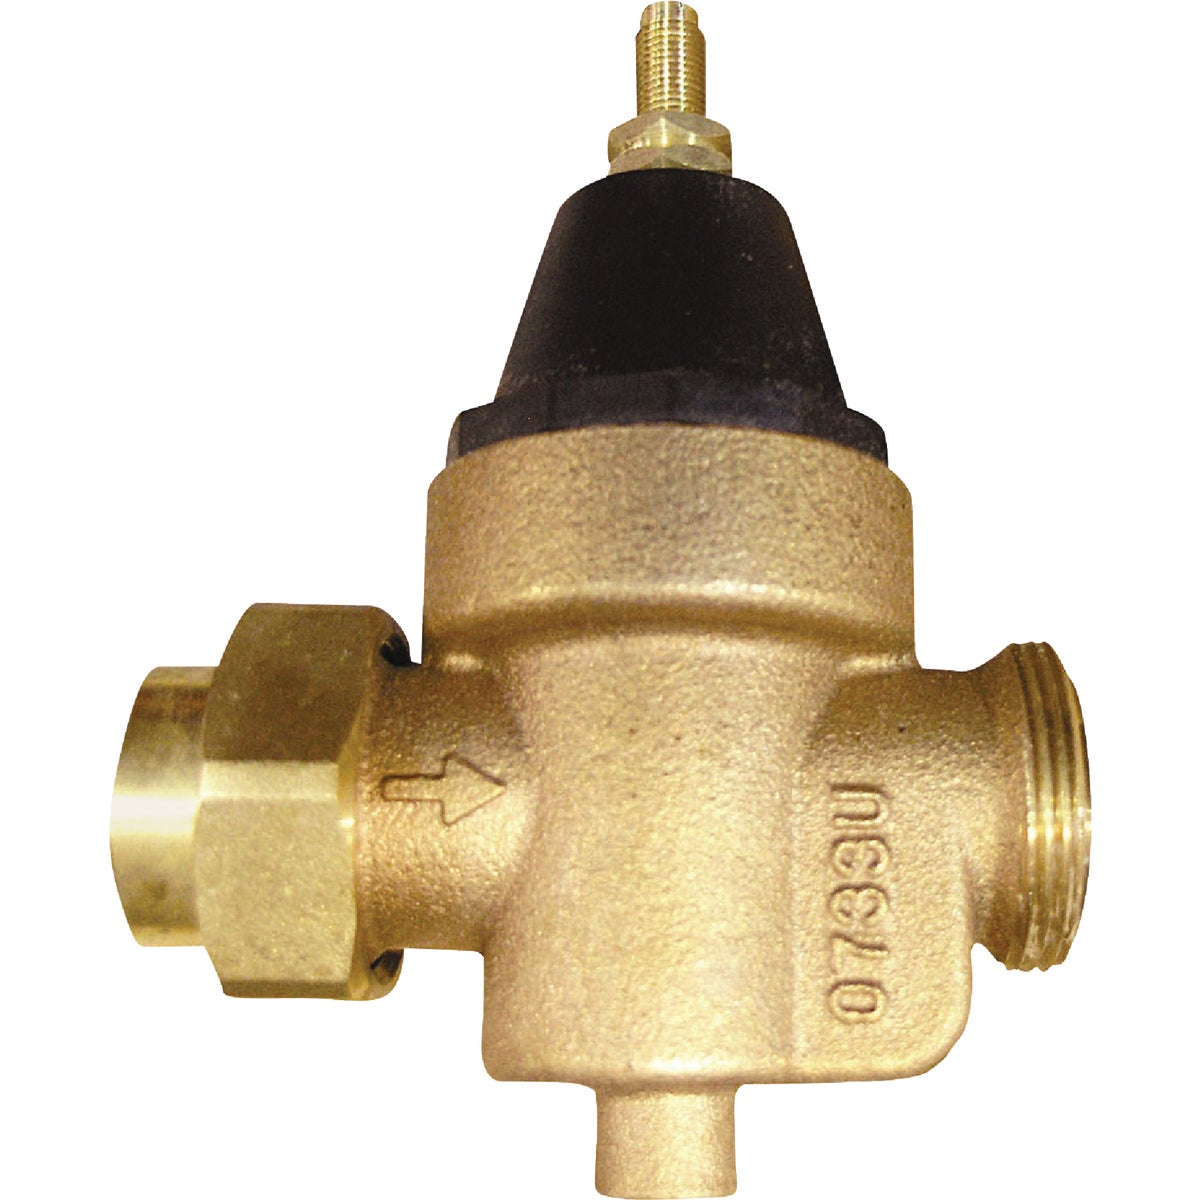 "1""FIP PRESUR REDUC VALVE - LFN45BM1-U by Watts Regulator Co"